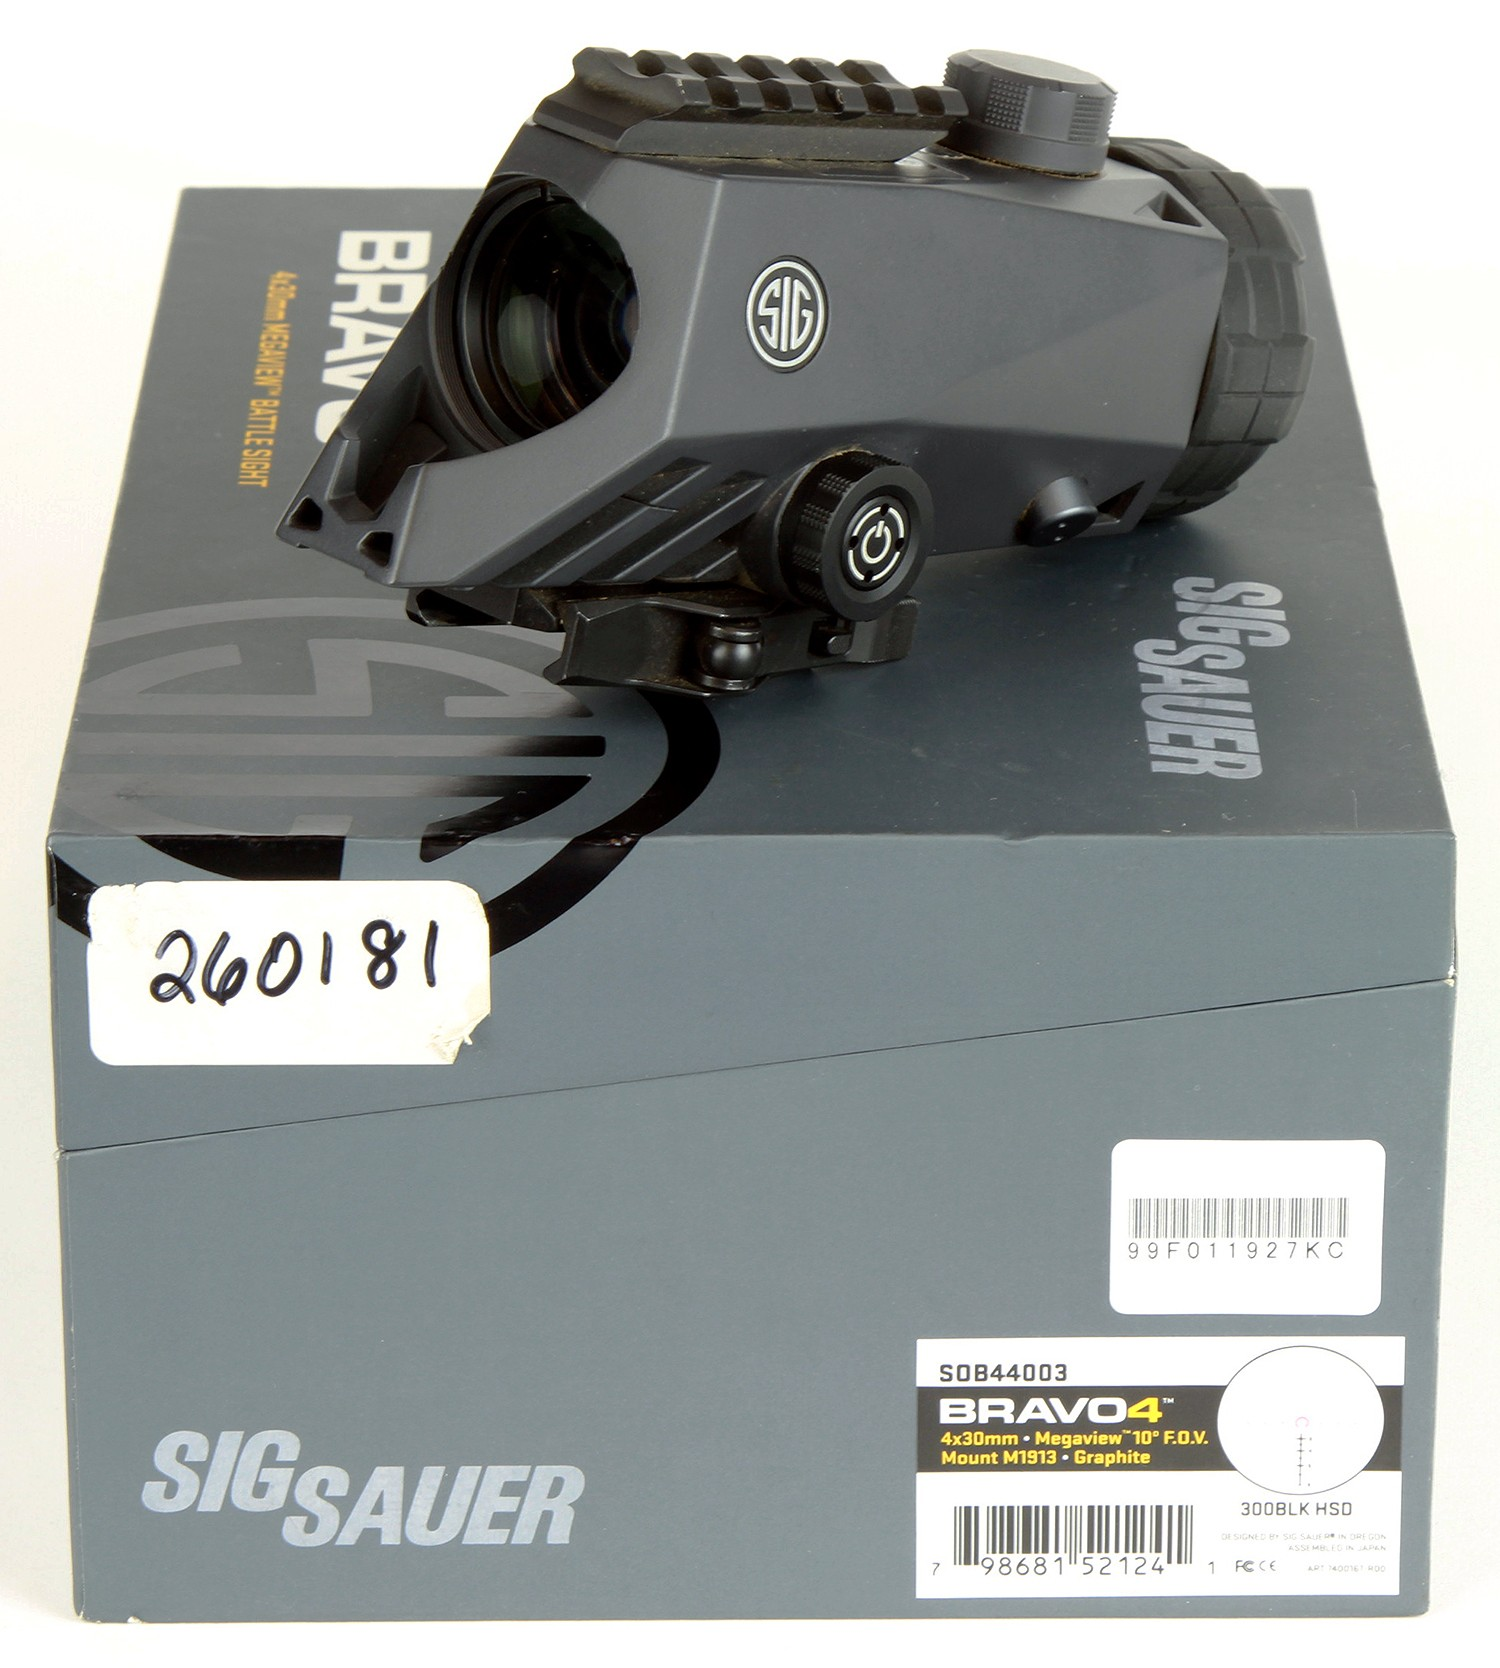 Sig Sauer 4x30 BRAVO4 Battle Sight DEMO-B